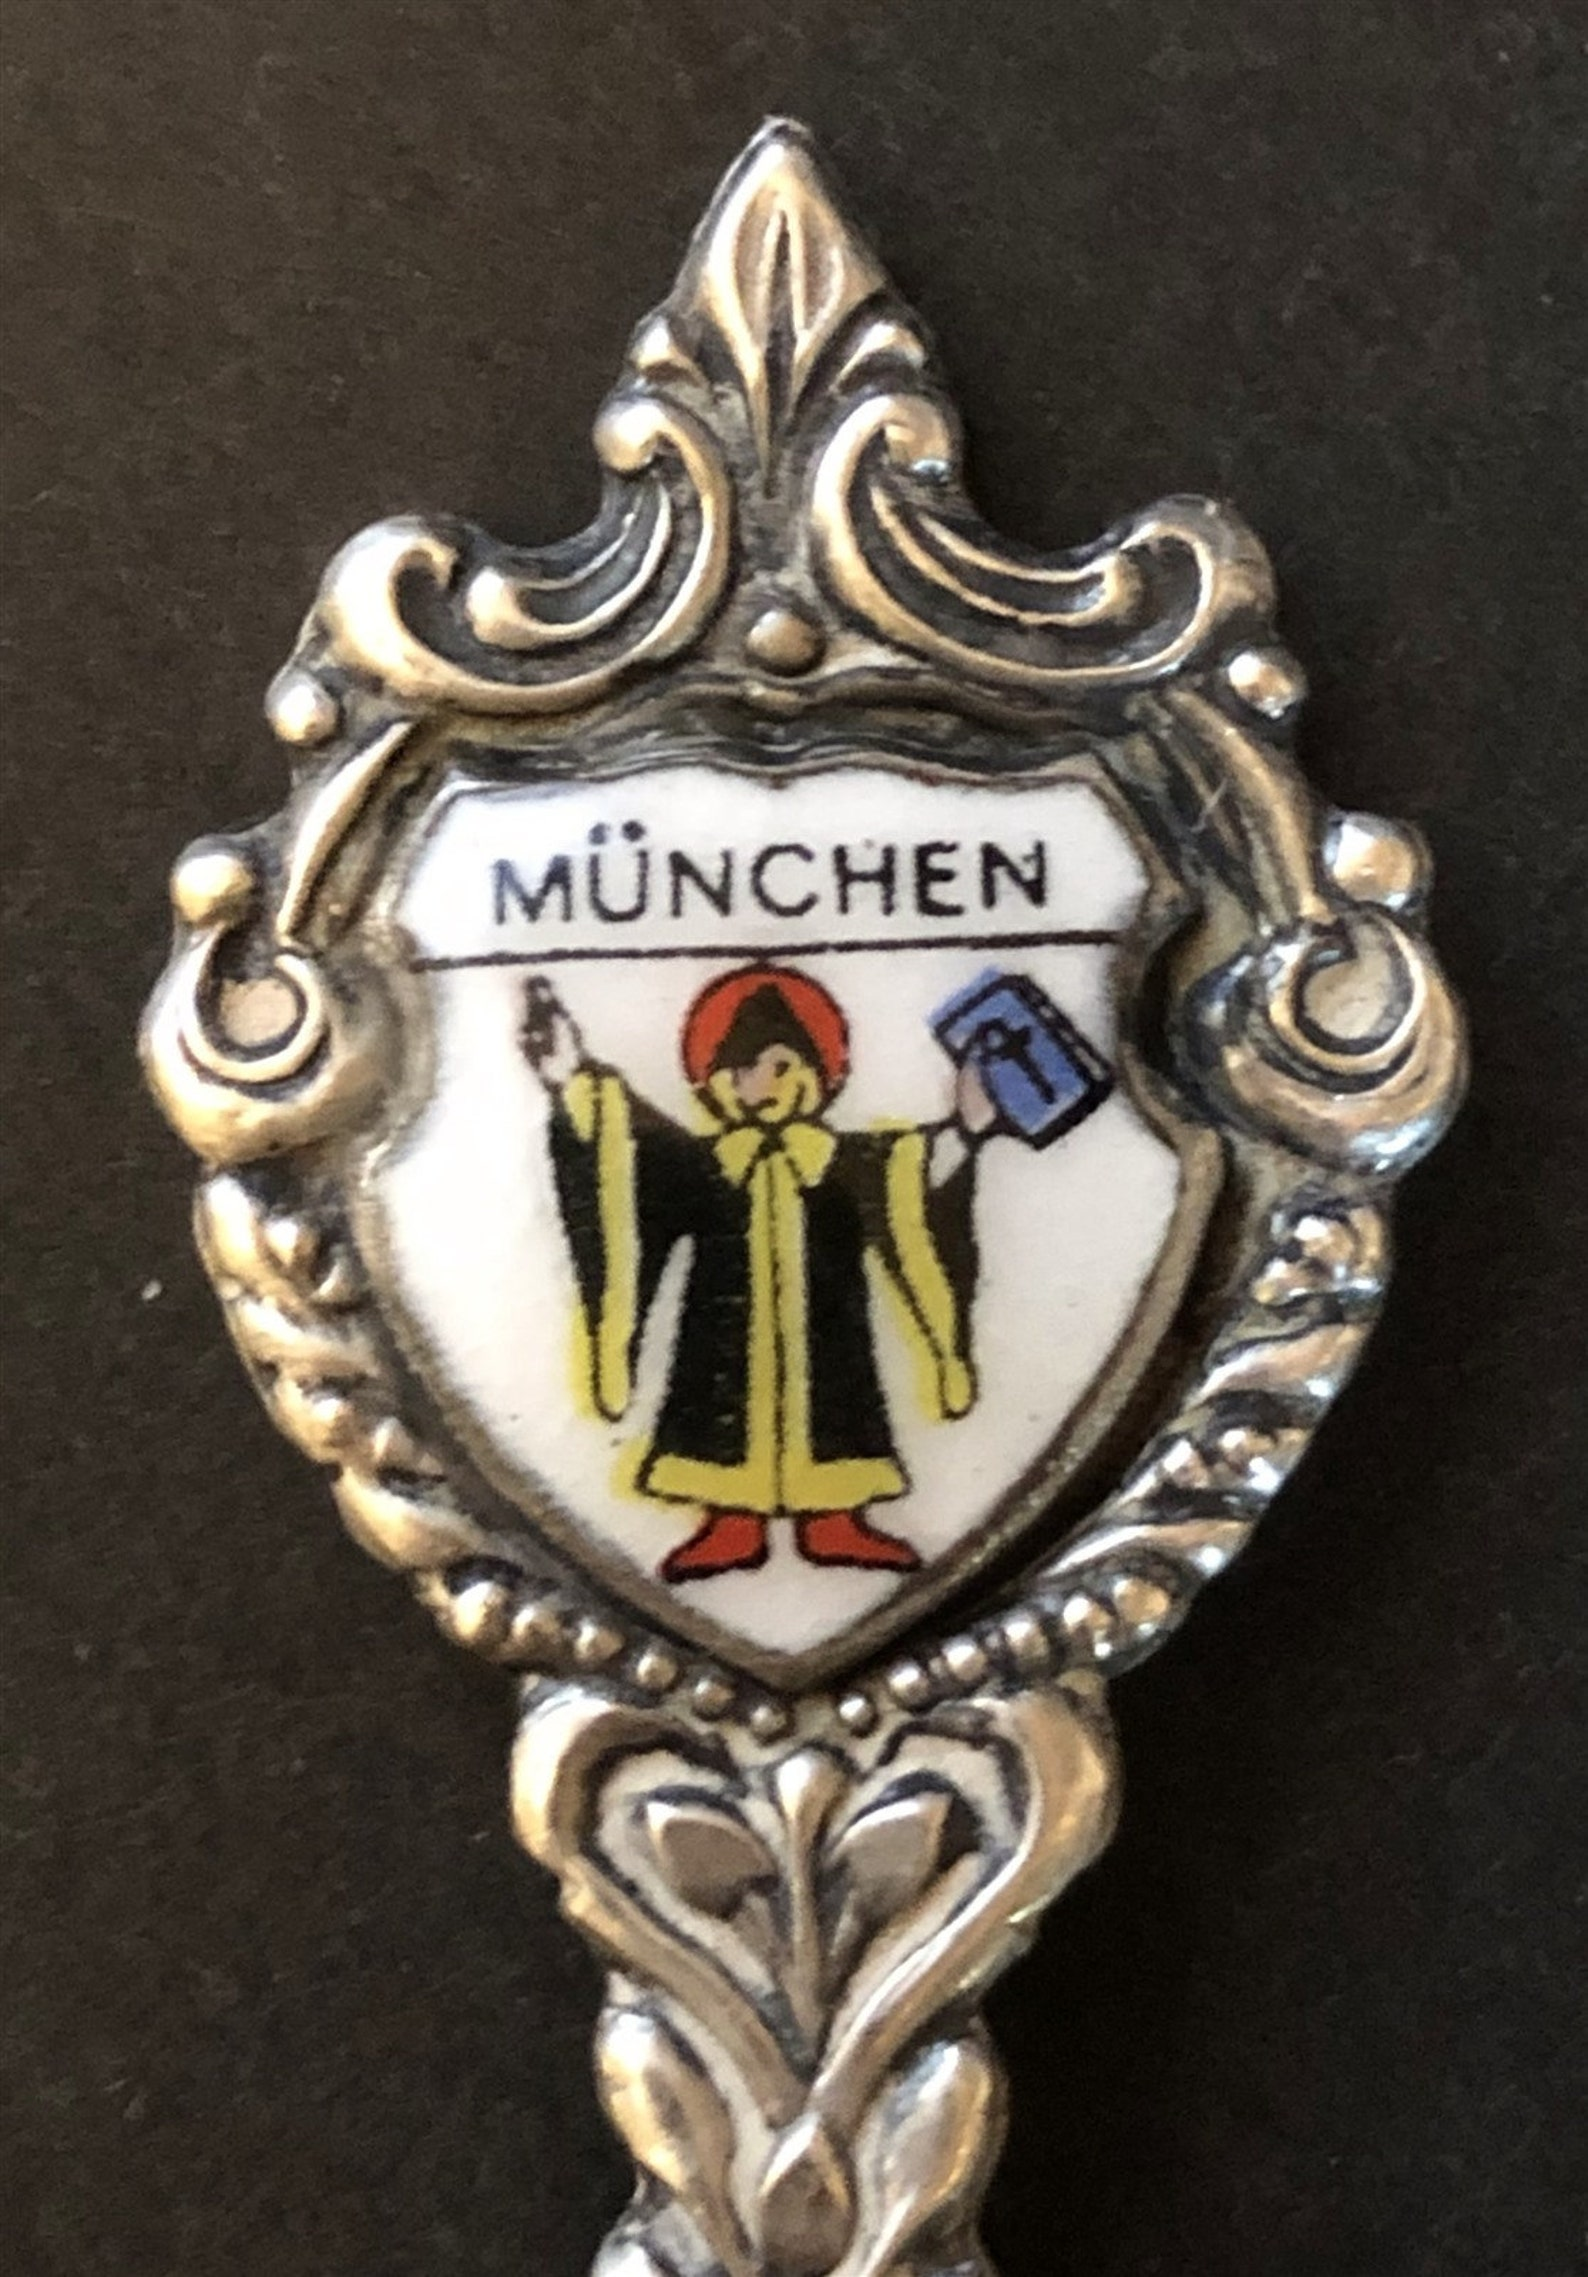 Munchen (Munich), Germany with Monk on Silver Plated Souvenir Spoon - pre-owned